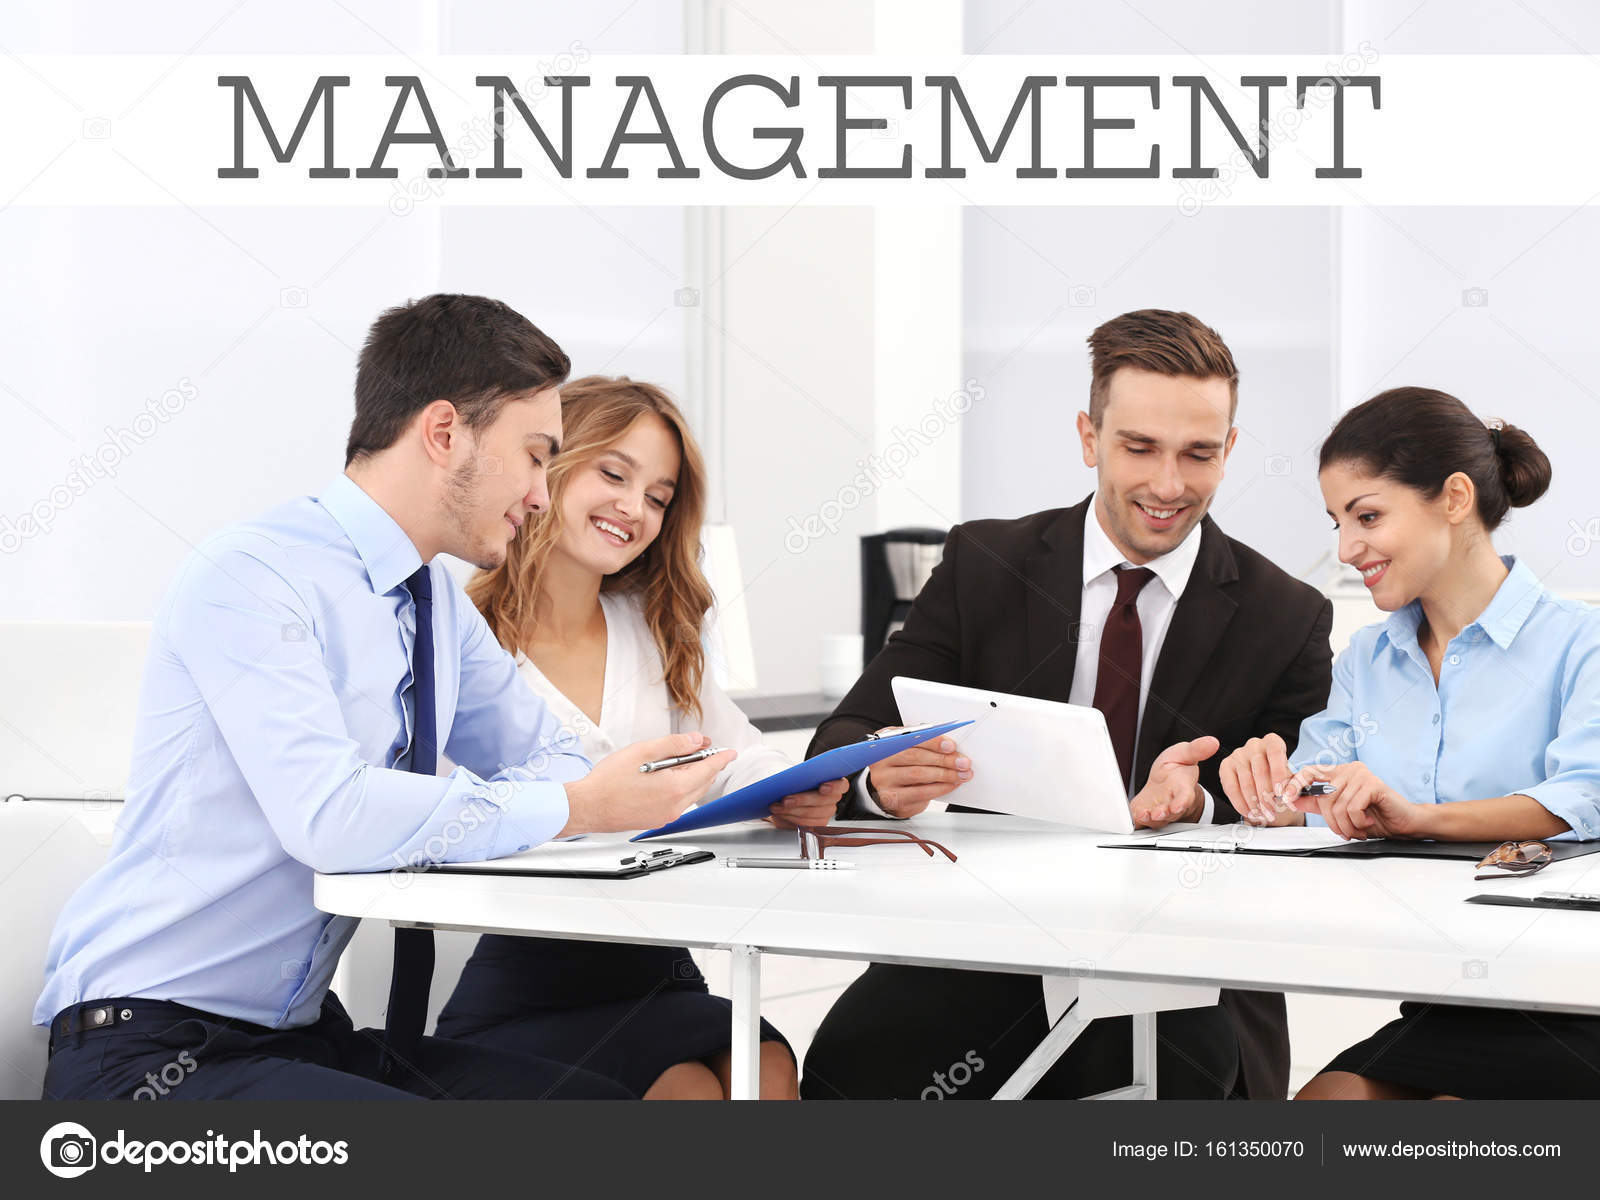 Management Concept People On Business Meeting In Office